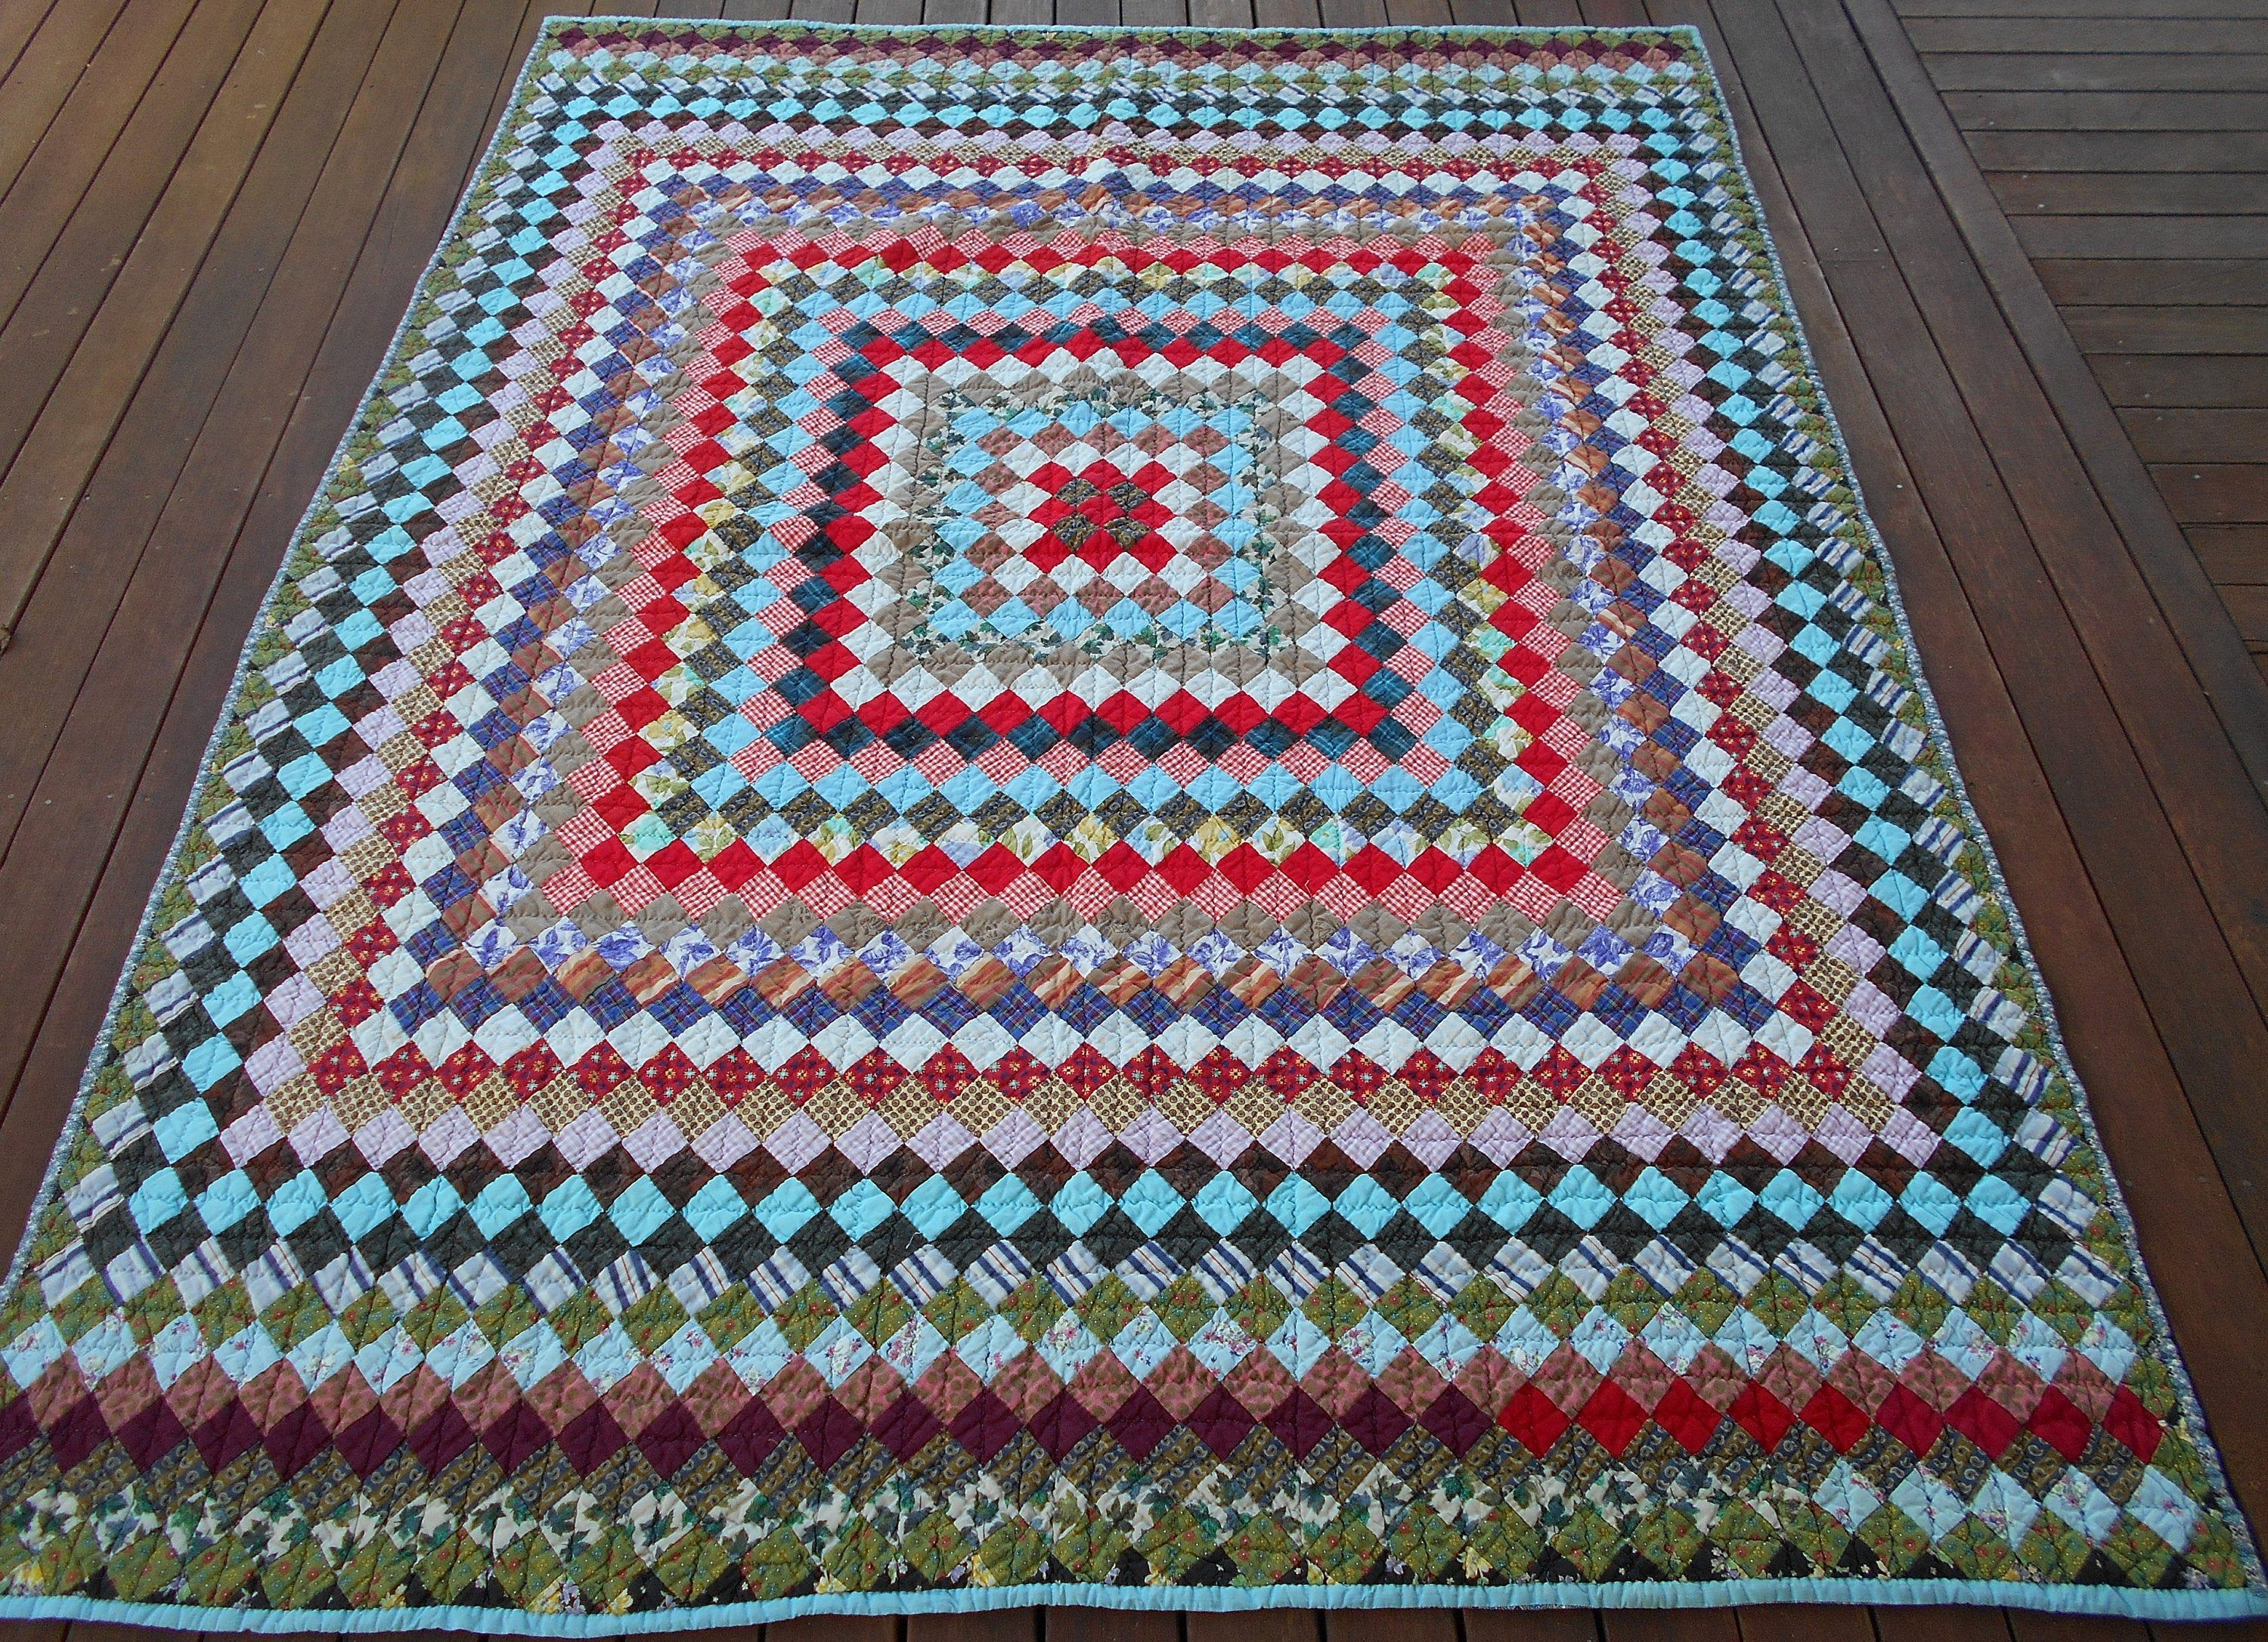 Pin By Pattie Bey On Lucy Boston Cross Quilt Hexagon Quilt Quilt Patterns